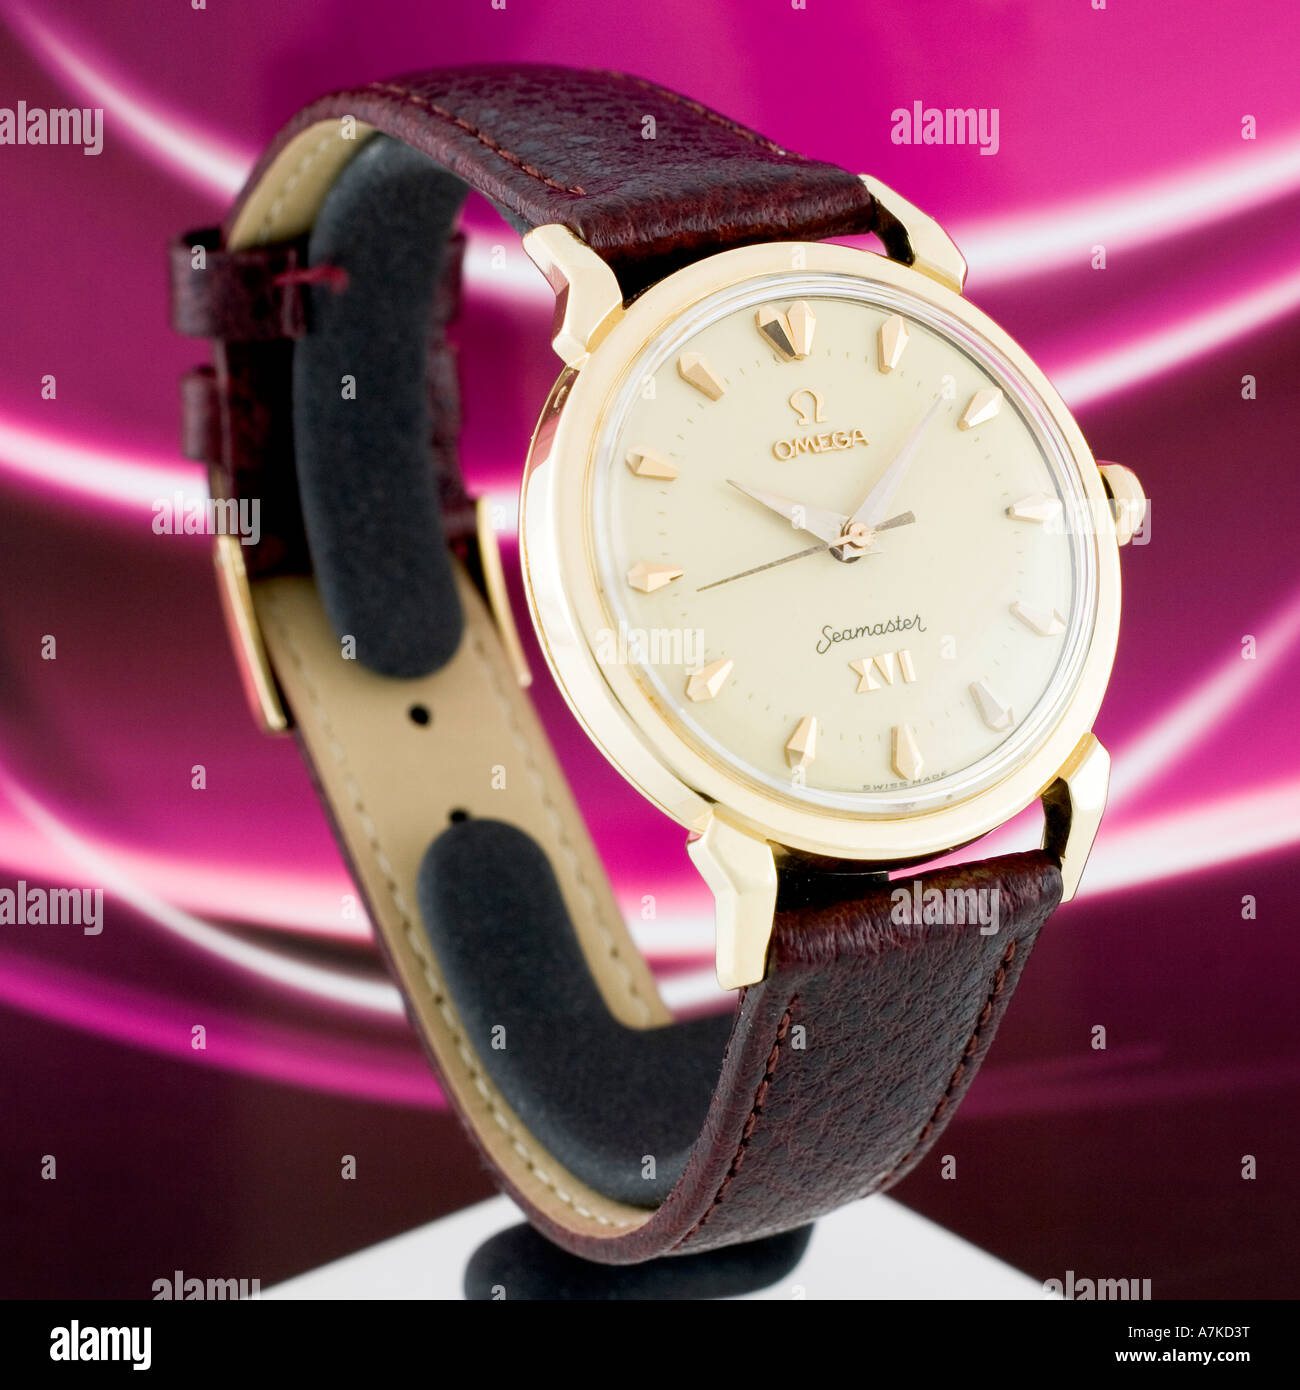 1956 Omega Seamster XVI Olympic Edition to commemorate Melbourne Australia Olympics. - Stock Image